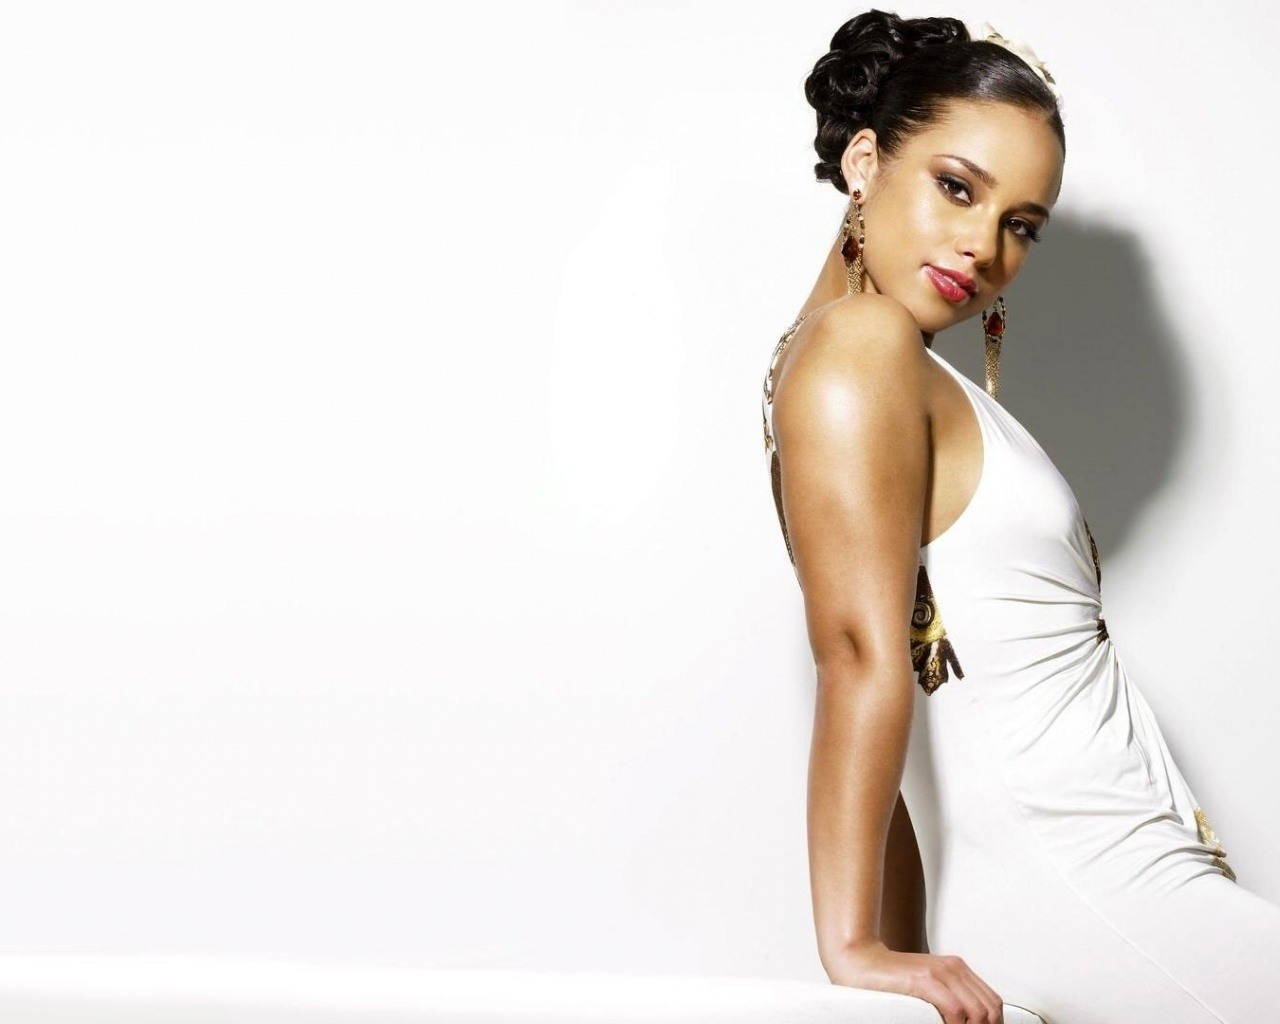 Beautiful Actresses Pics, Alicia Keys in White and Tight Dress, Looking Directly at the Screen 1280X1024 free wallpaper download